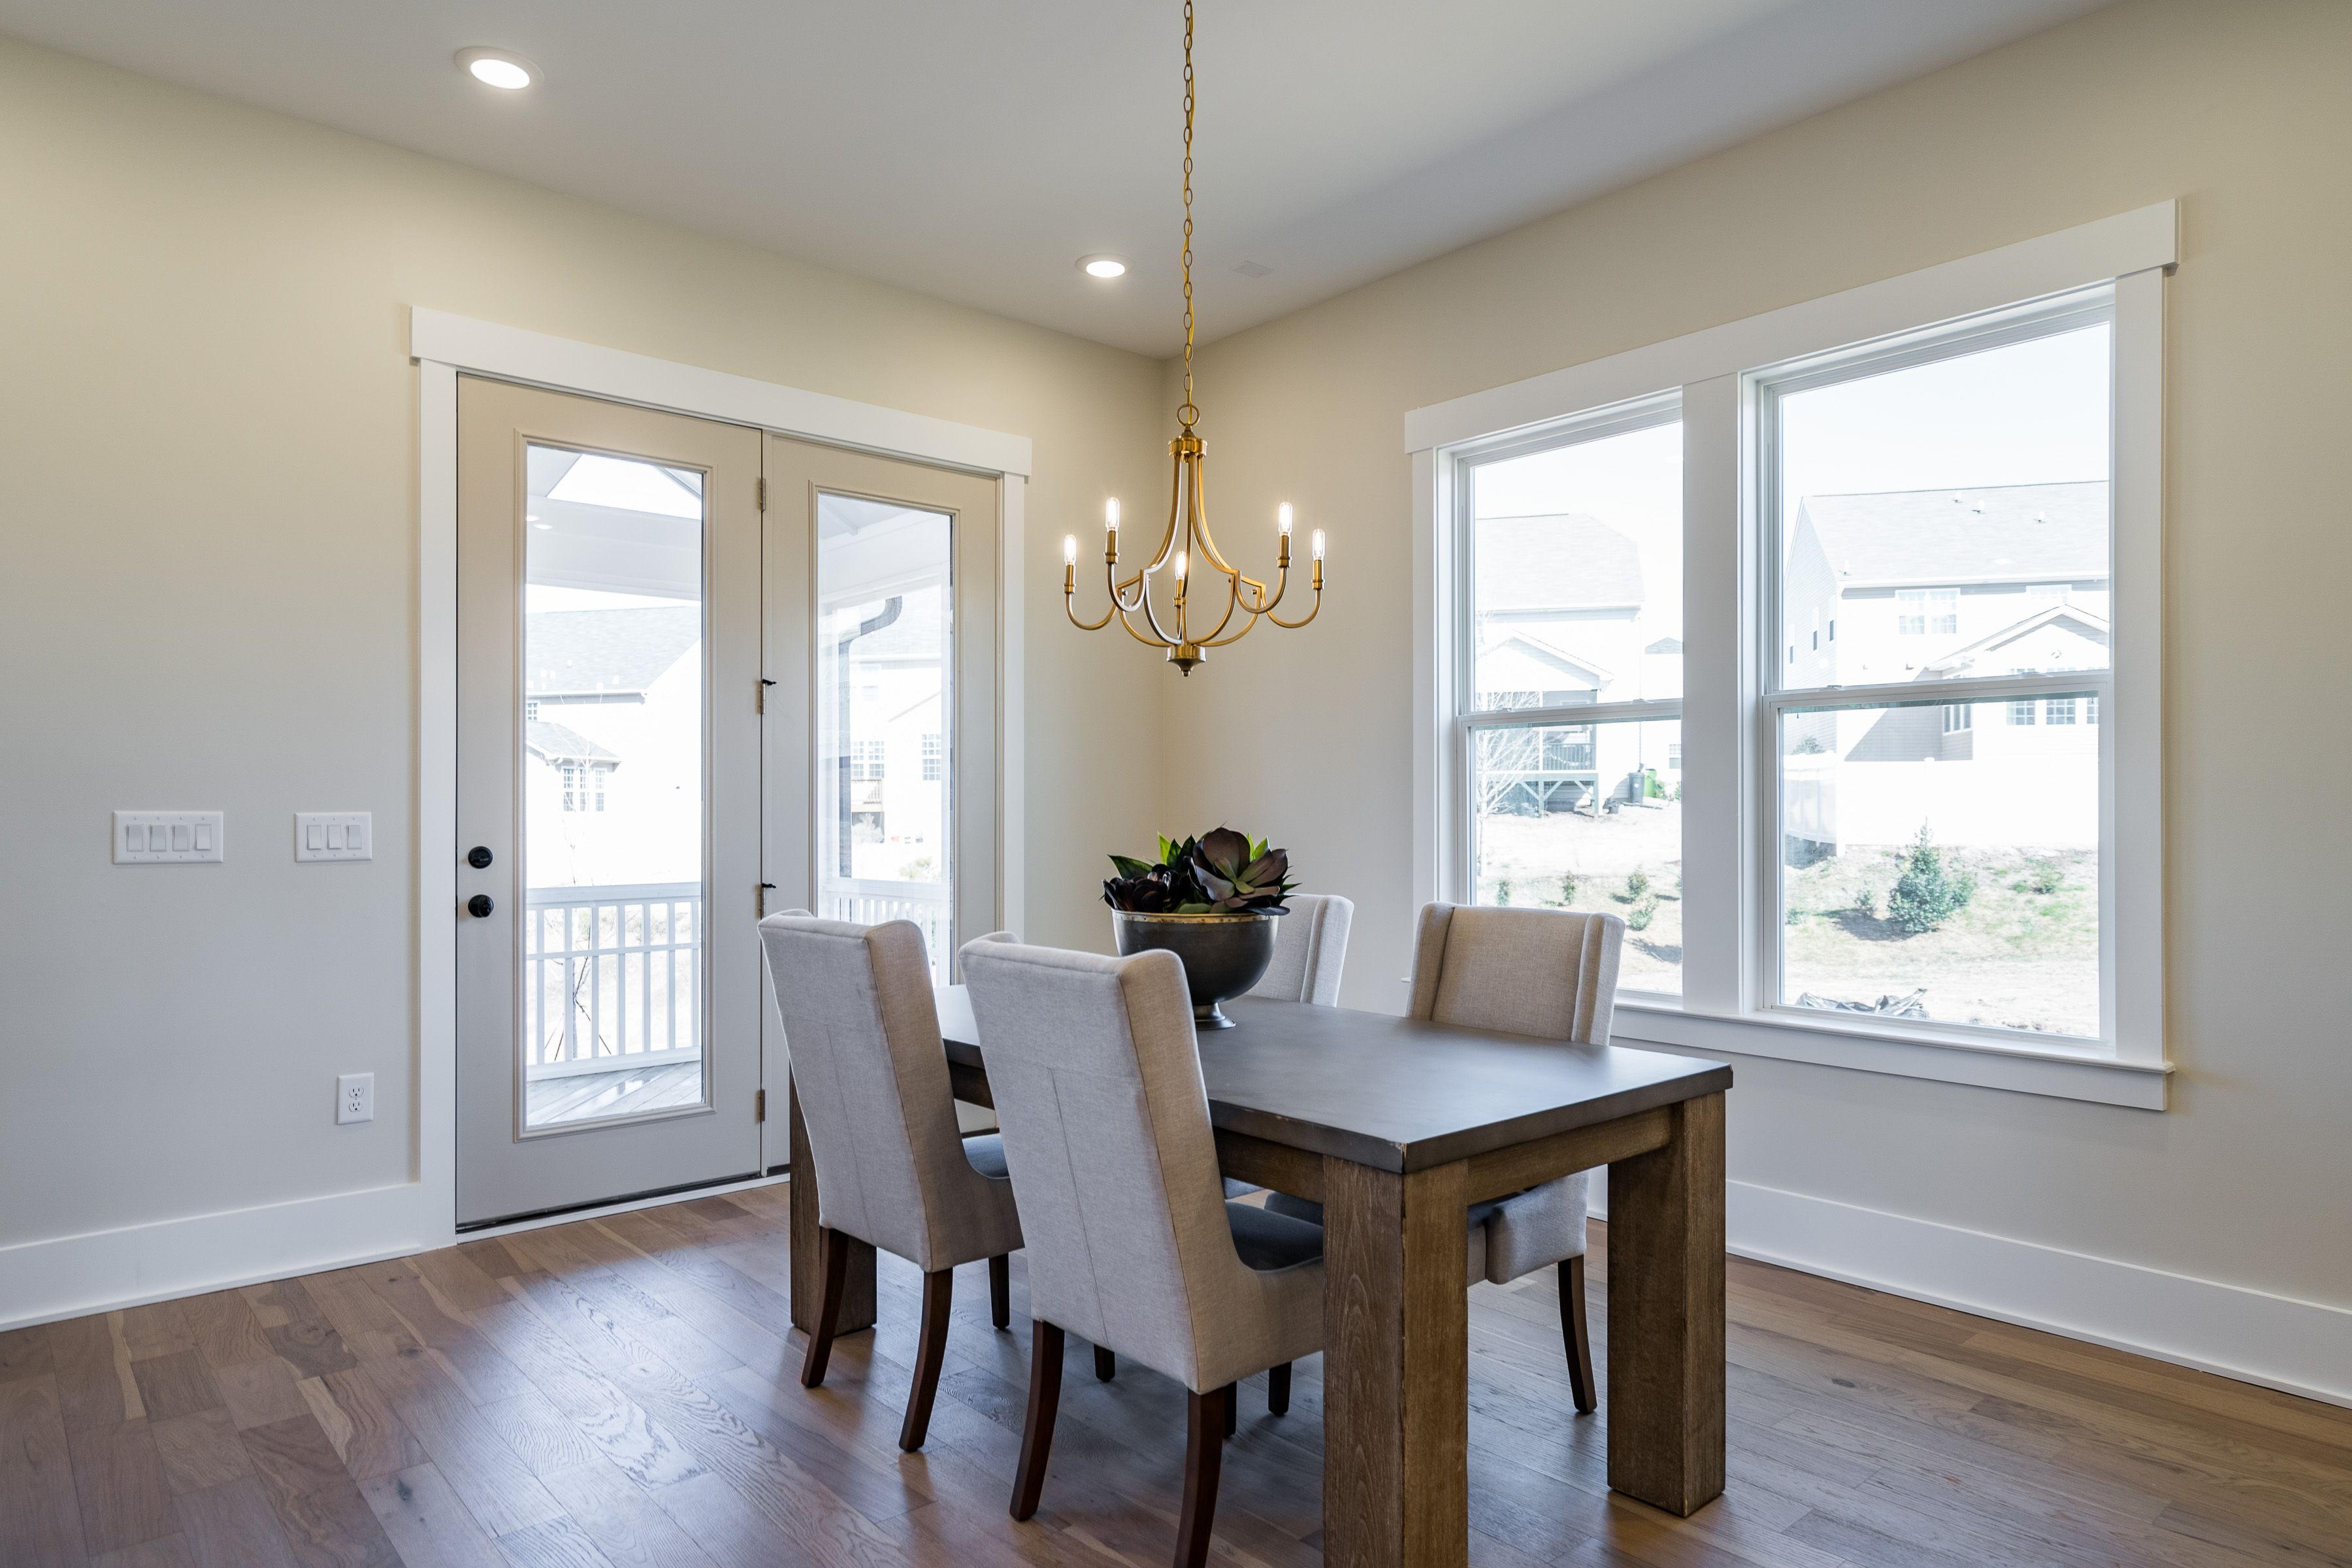 Kitchen featured in the Meaghan By Ashton Woods in Raleigh-Durham-Chapel Hill, NC